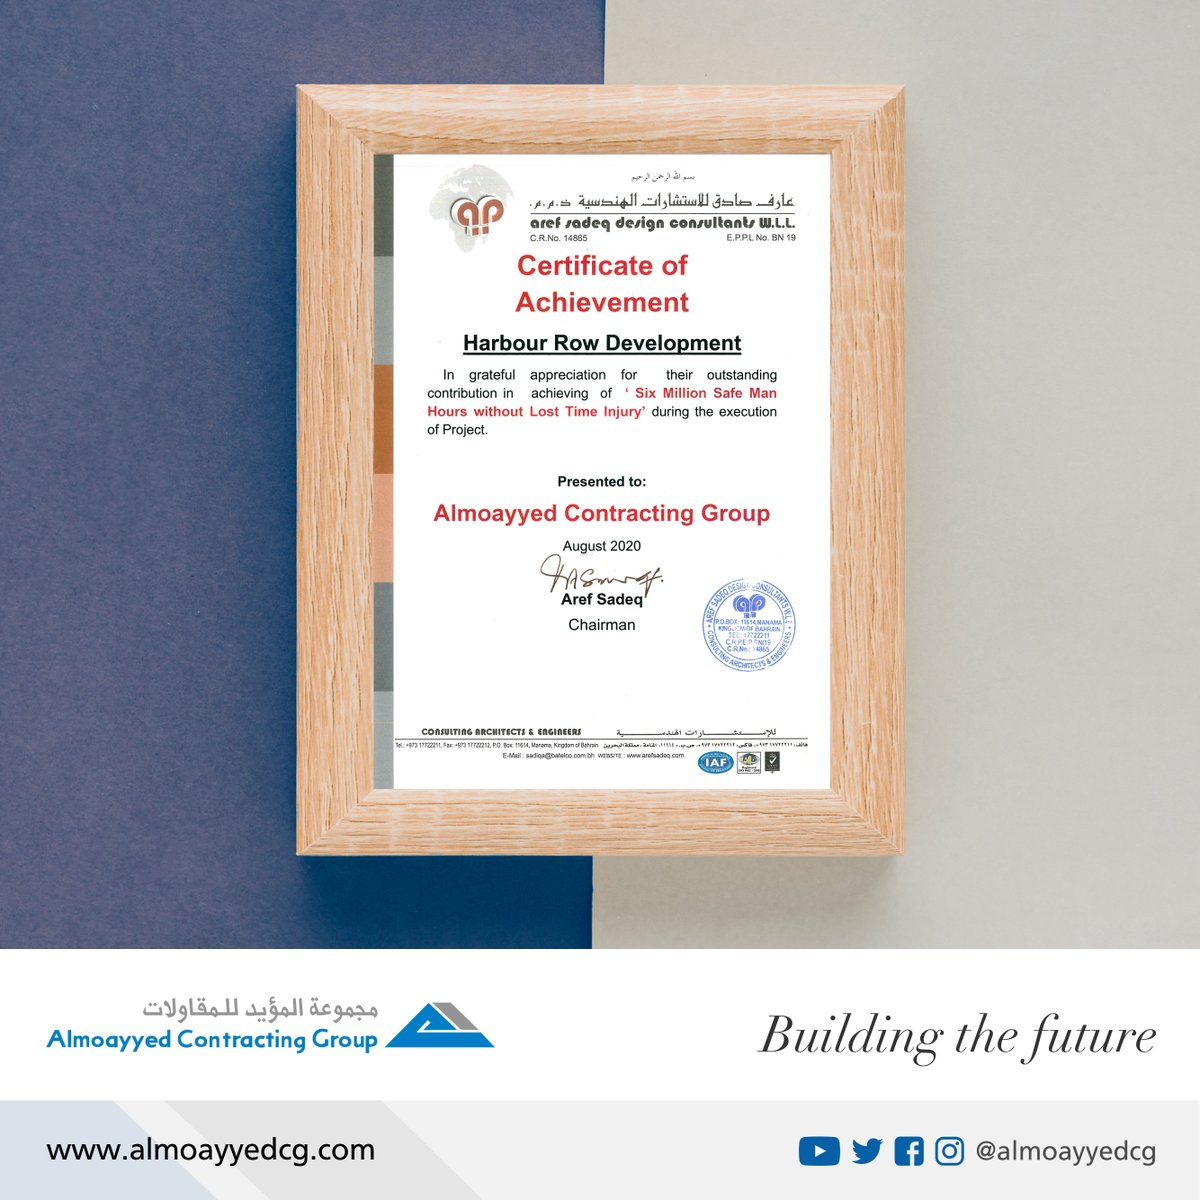 Almoayyed Contracting has been awarded a Certificate of Achievement as a token of appreciation by M/S Aref Sadiq Design Consultants for achieving six million safe men hour without lost-time injury on the Harbor Row Project. https://t.co/FeGHw15i8w